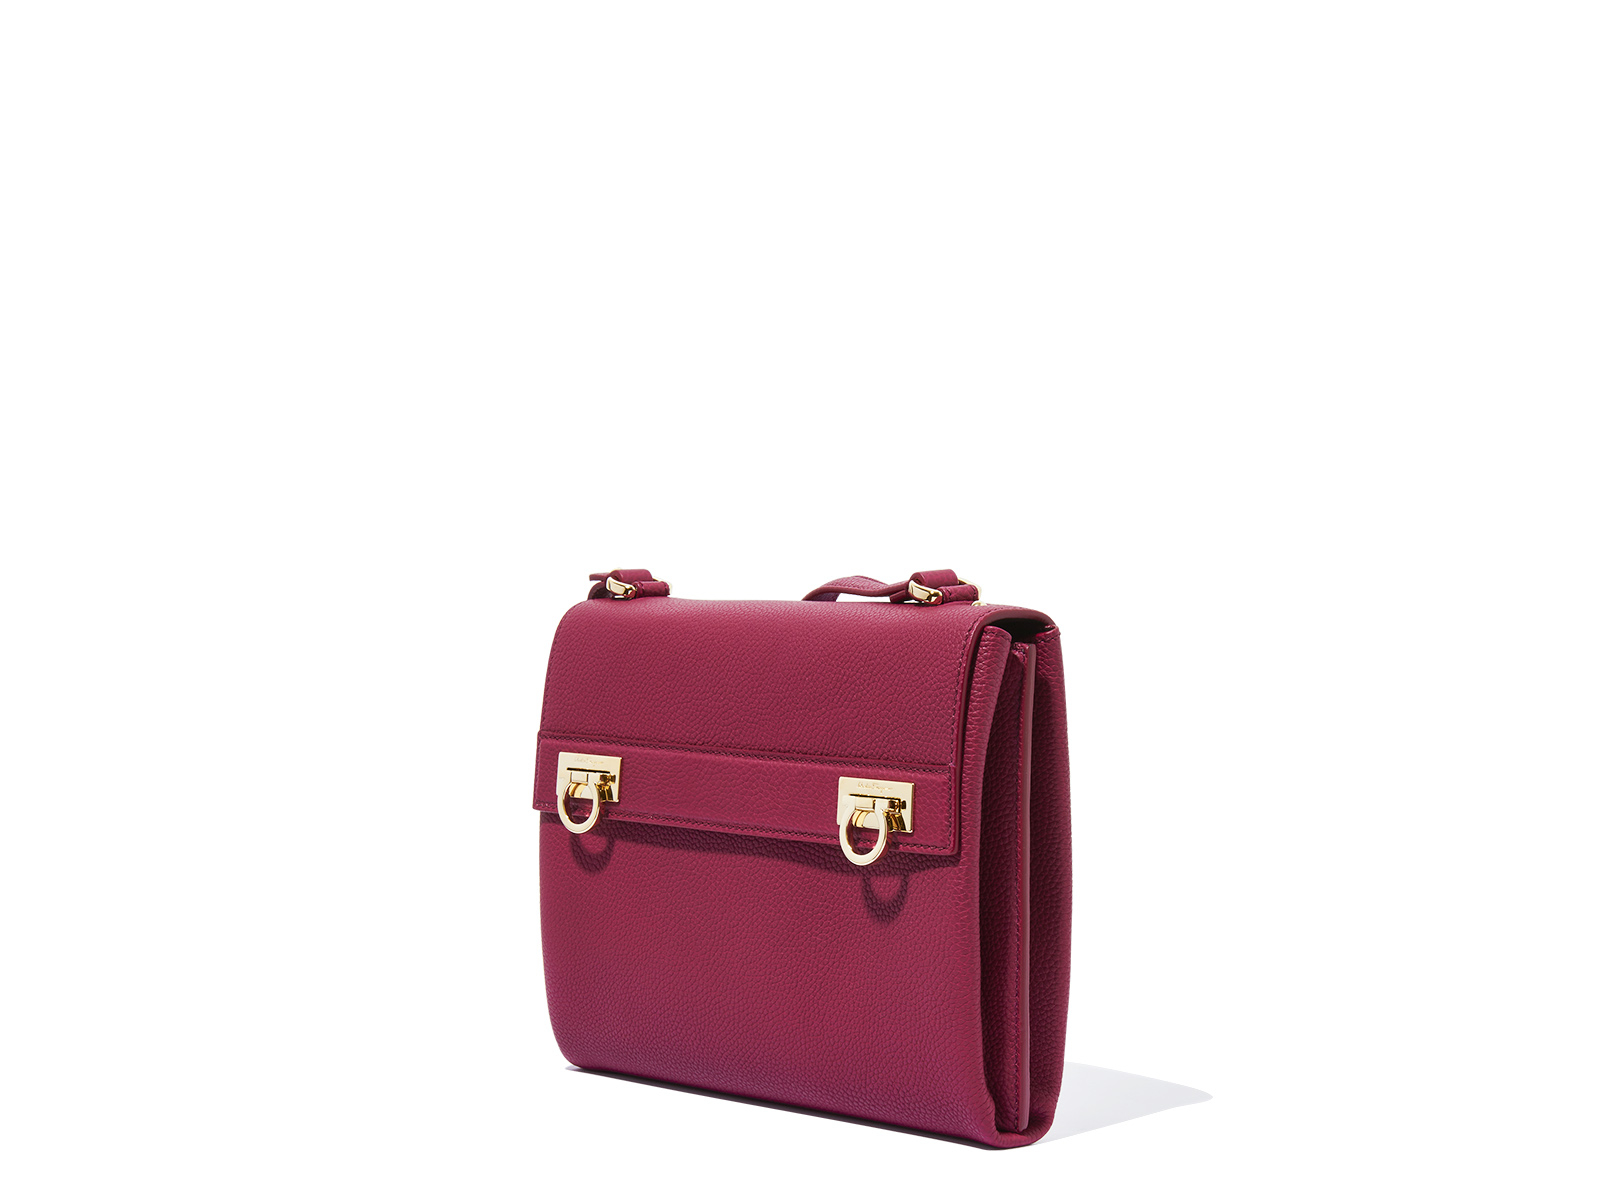 Ferragamo Gancio Medium Messenger Bag in Red (Wine) - Lyst